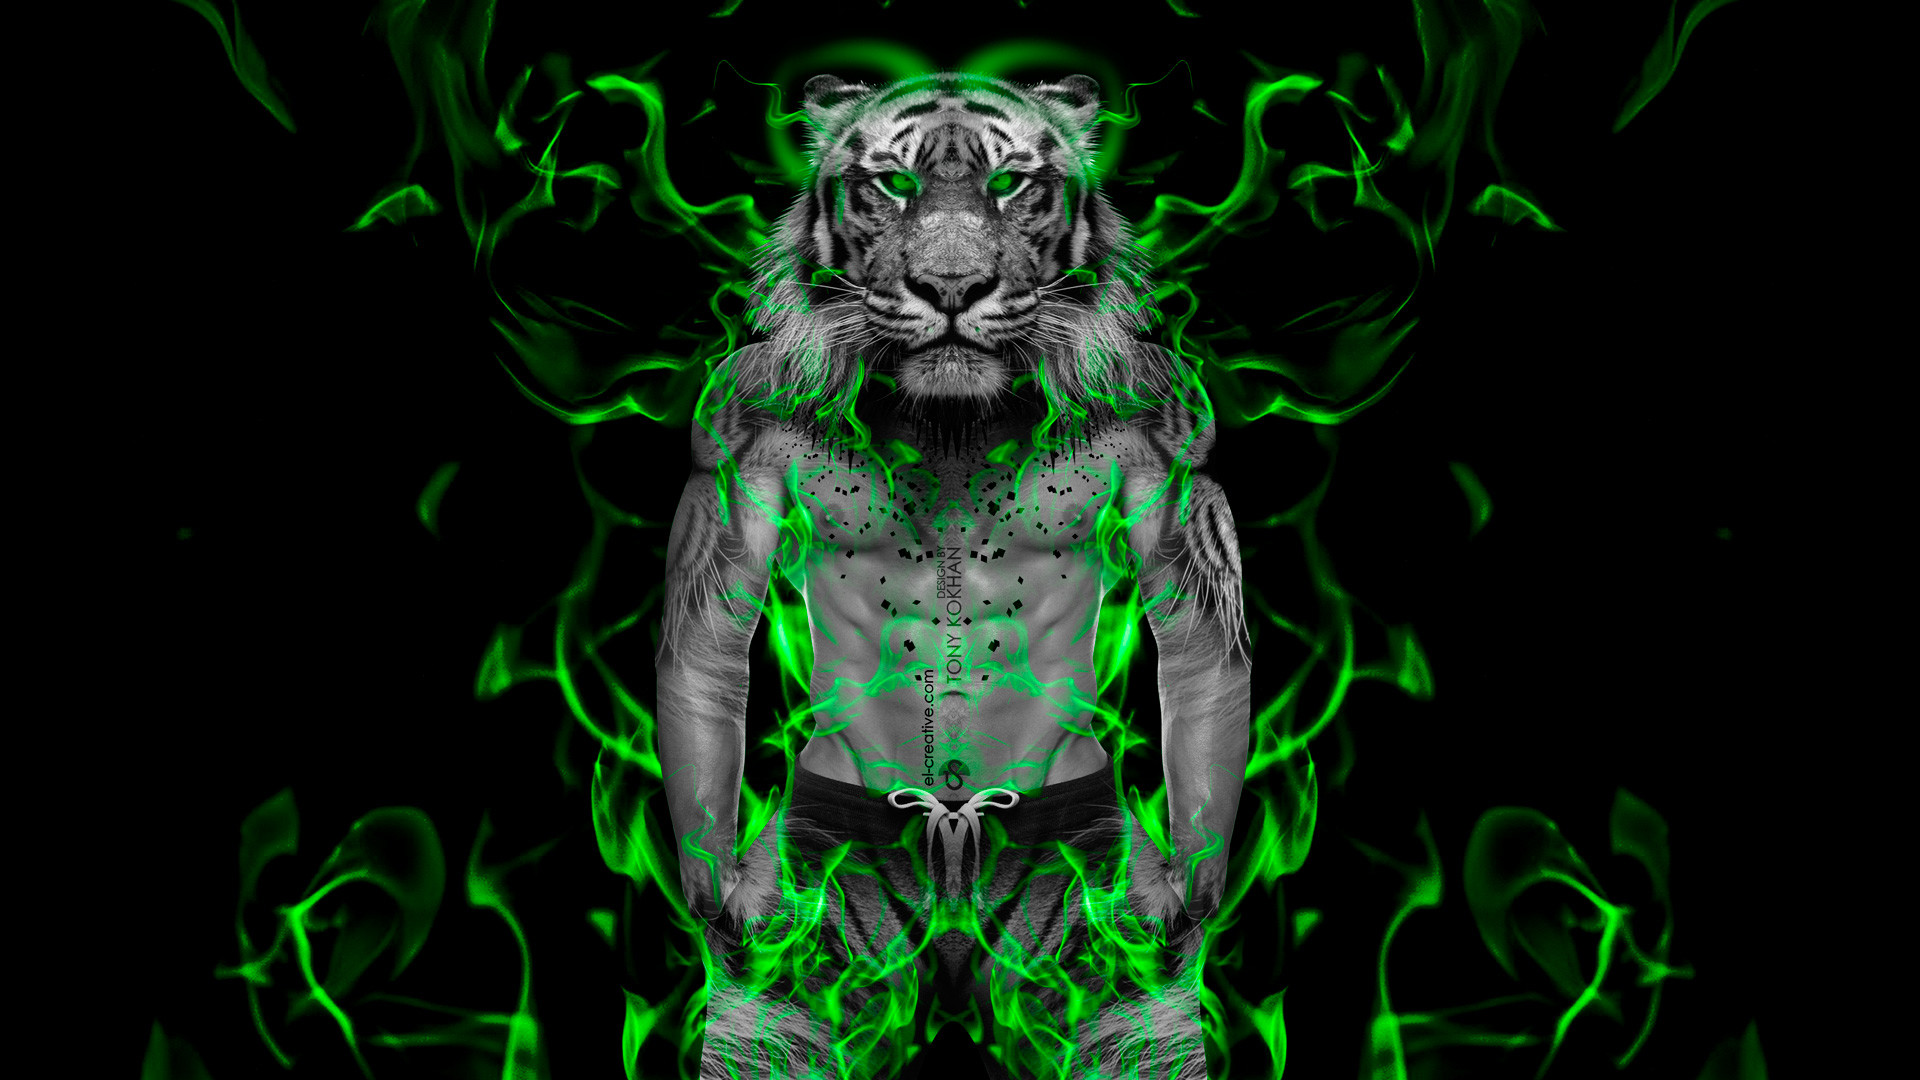 Res: 1920x1080, EV.191 Green Tiger,  px Green Tiger Wallpapers